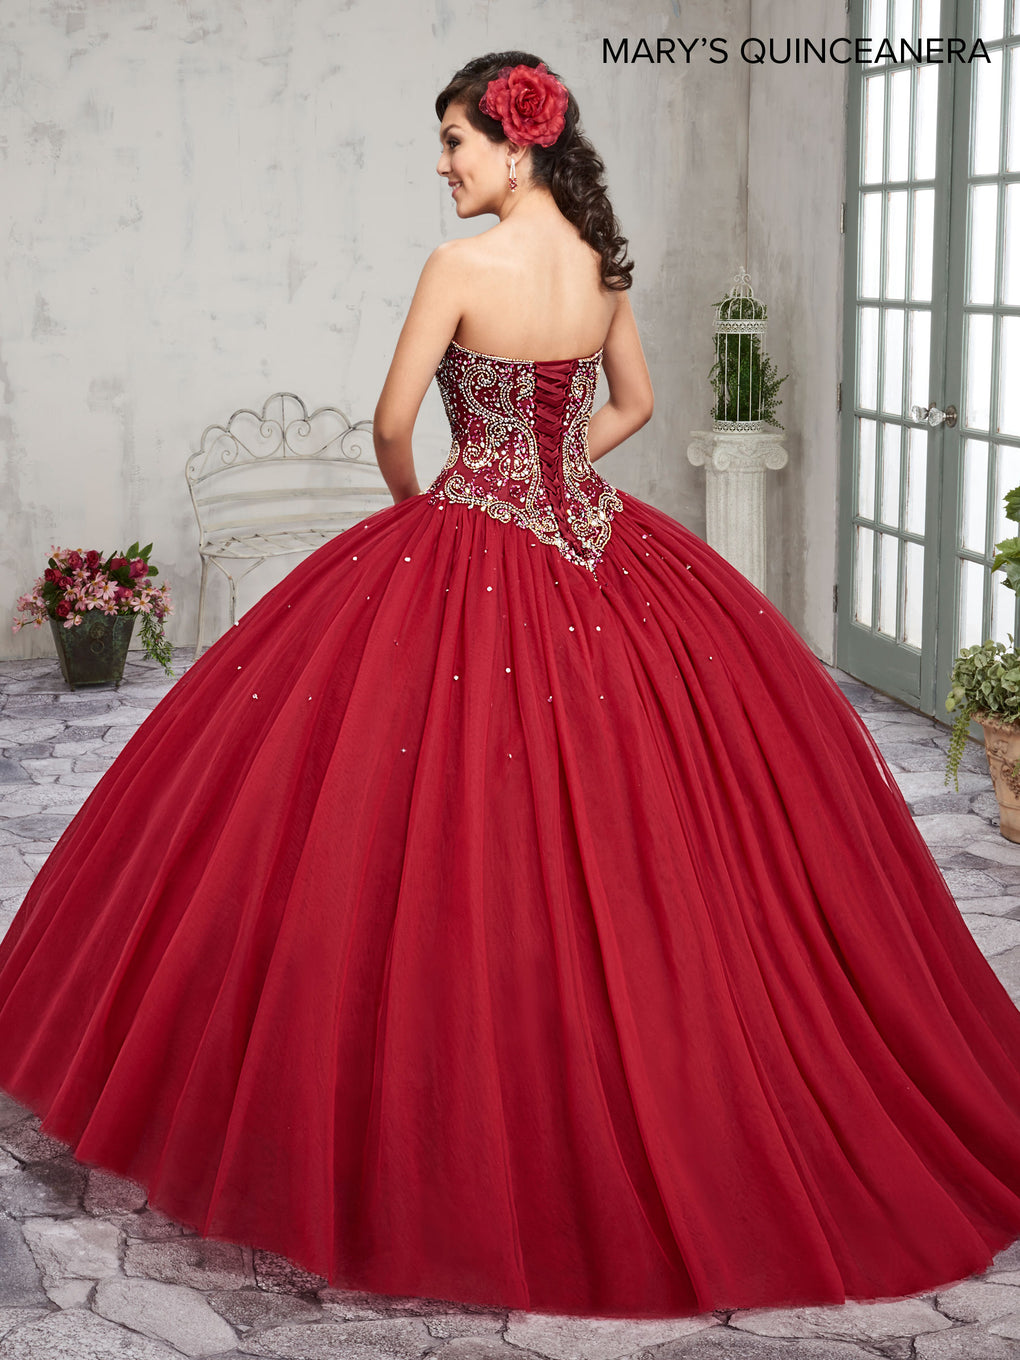 Marys Quinceanera Dresses in Blueberry, Wine, or White Color